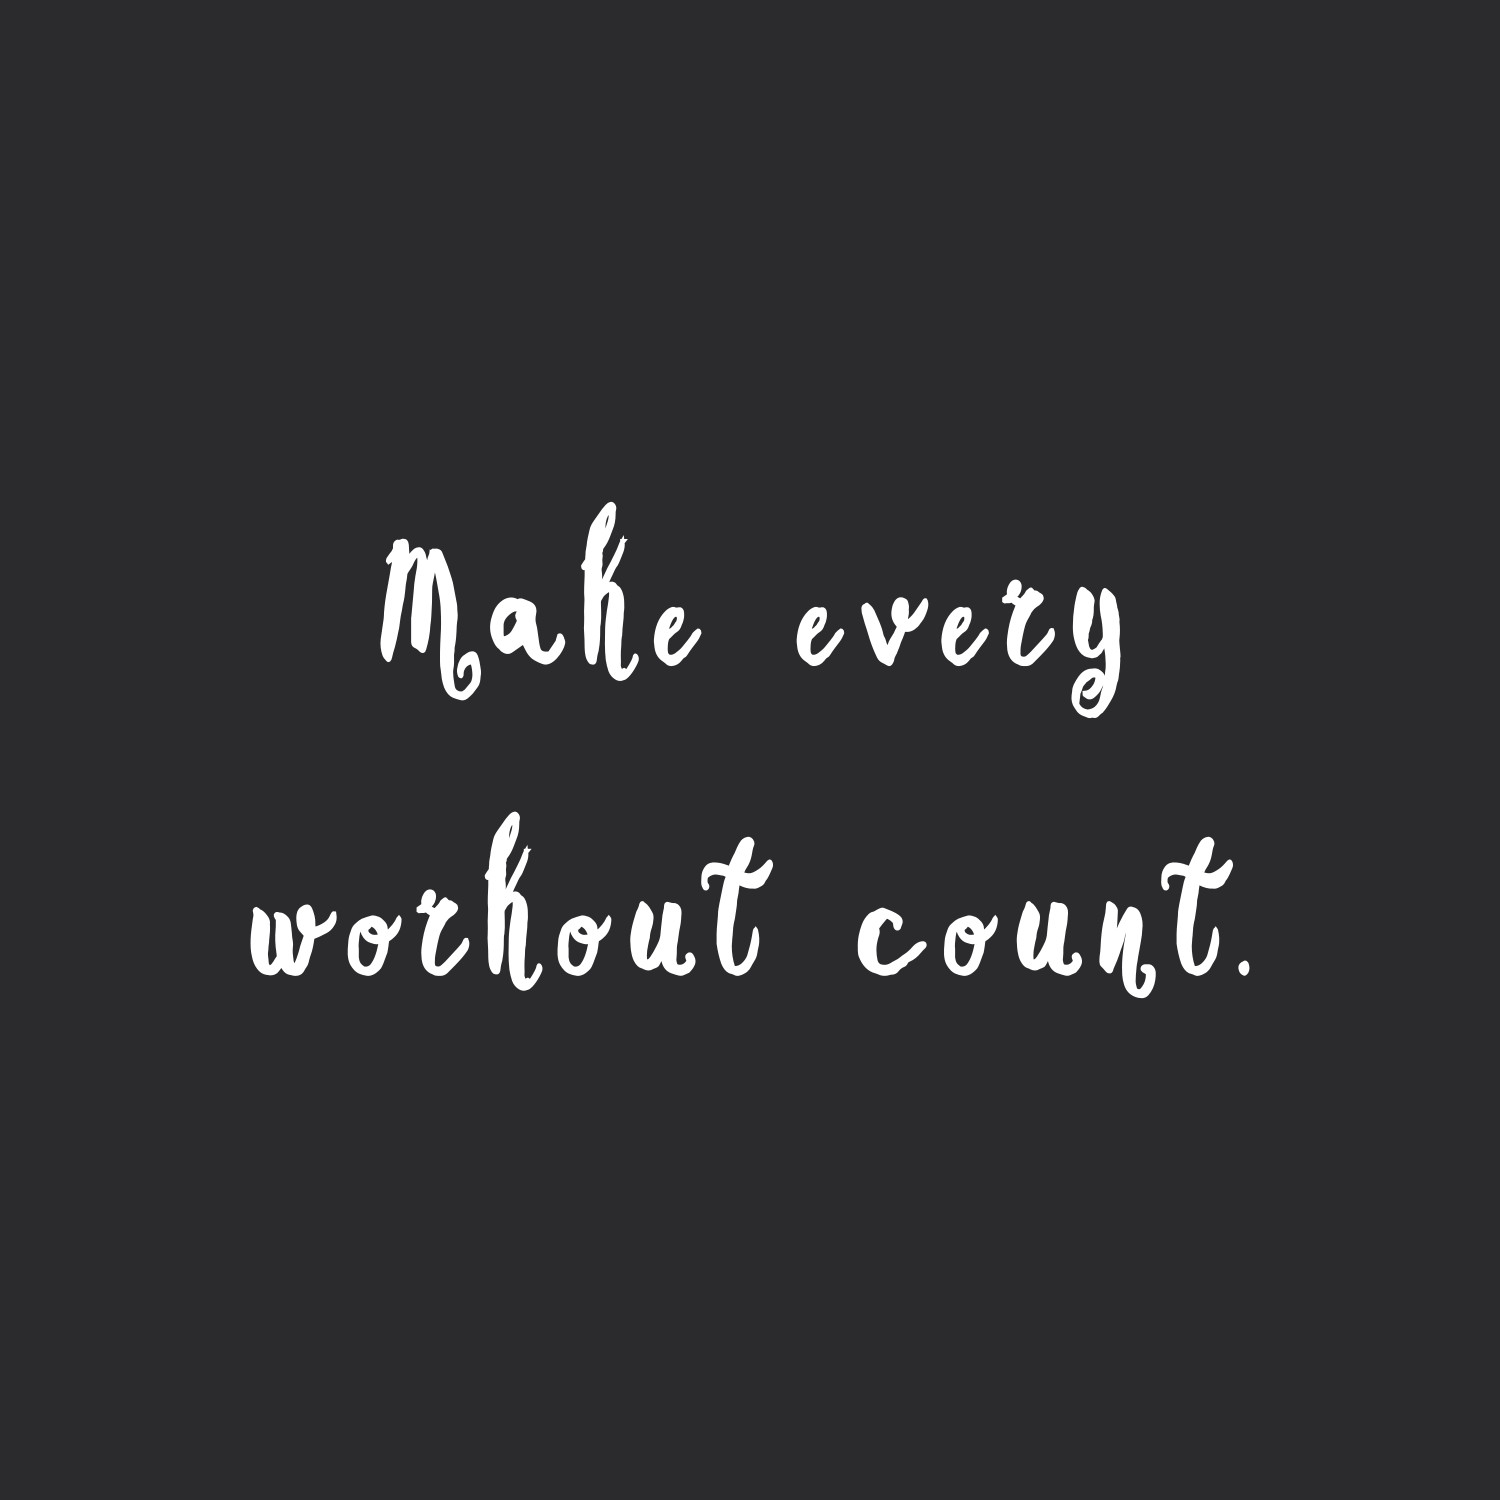 make every workout count training inspiration quote